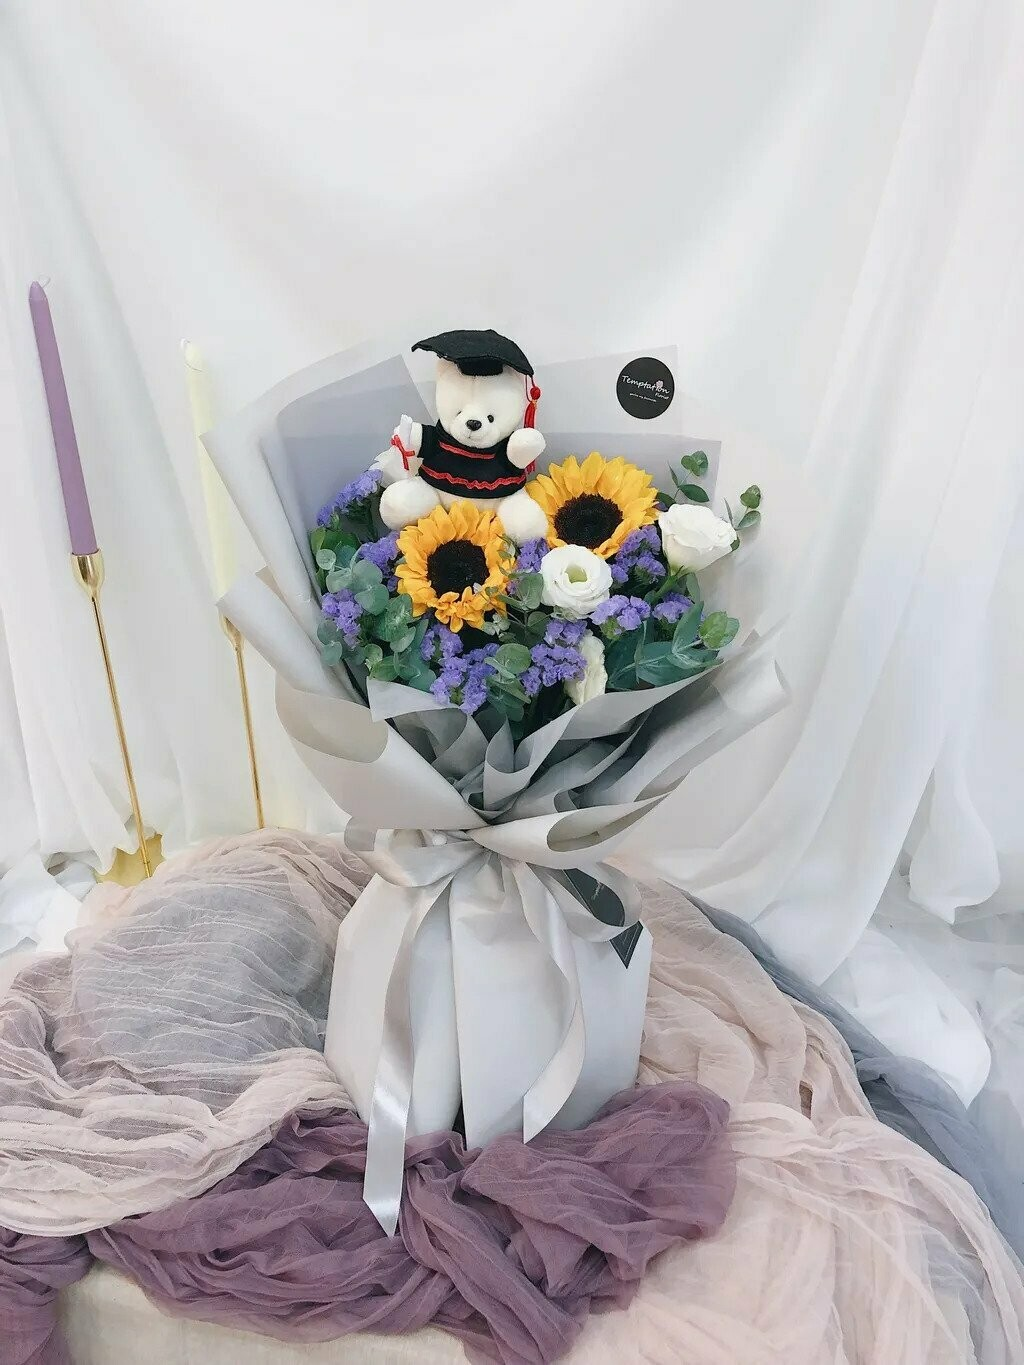 Daily (By: Temptation Florist from Seremban)